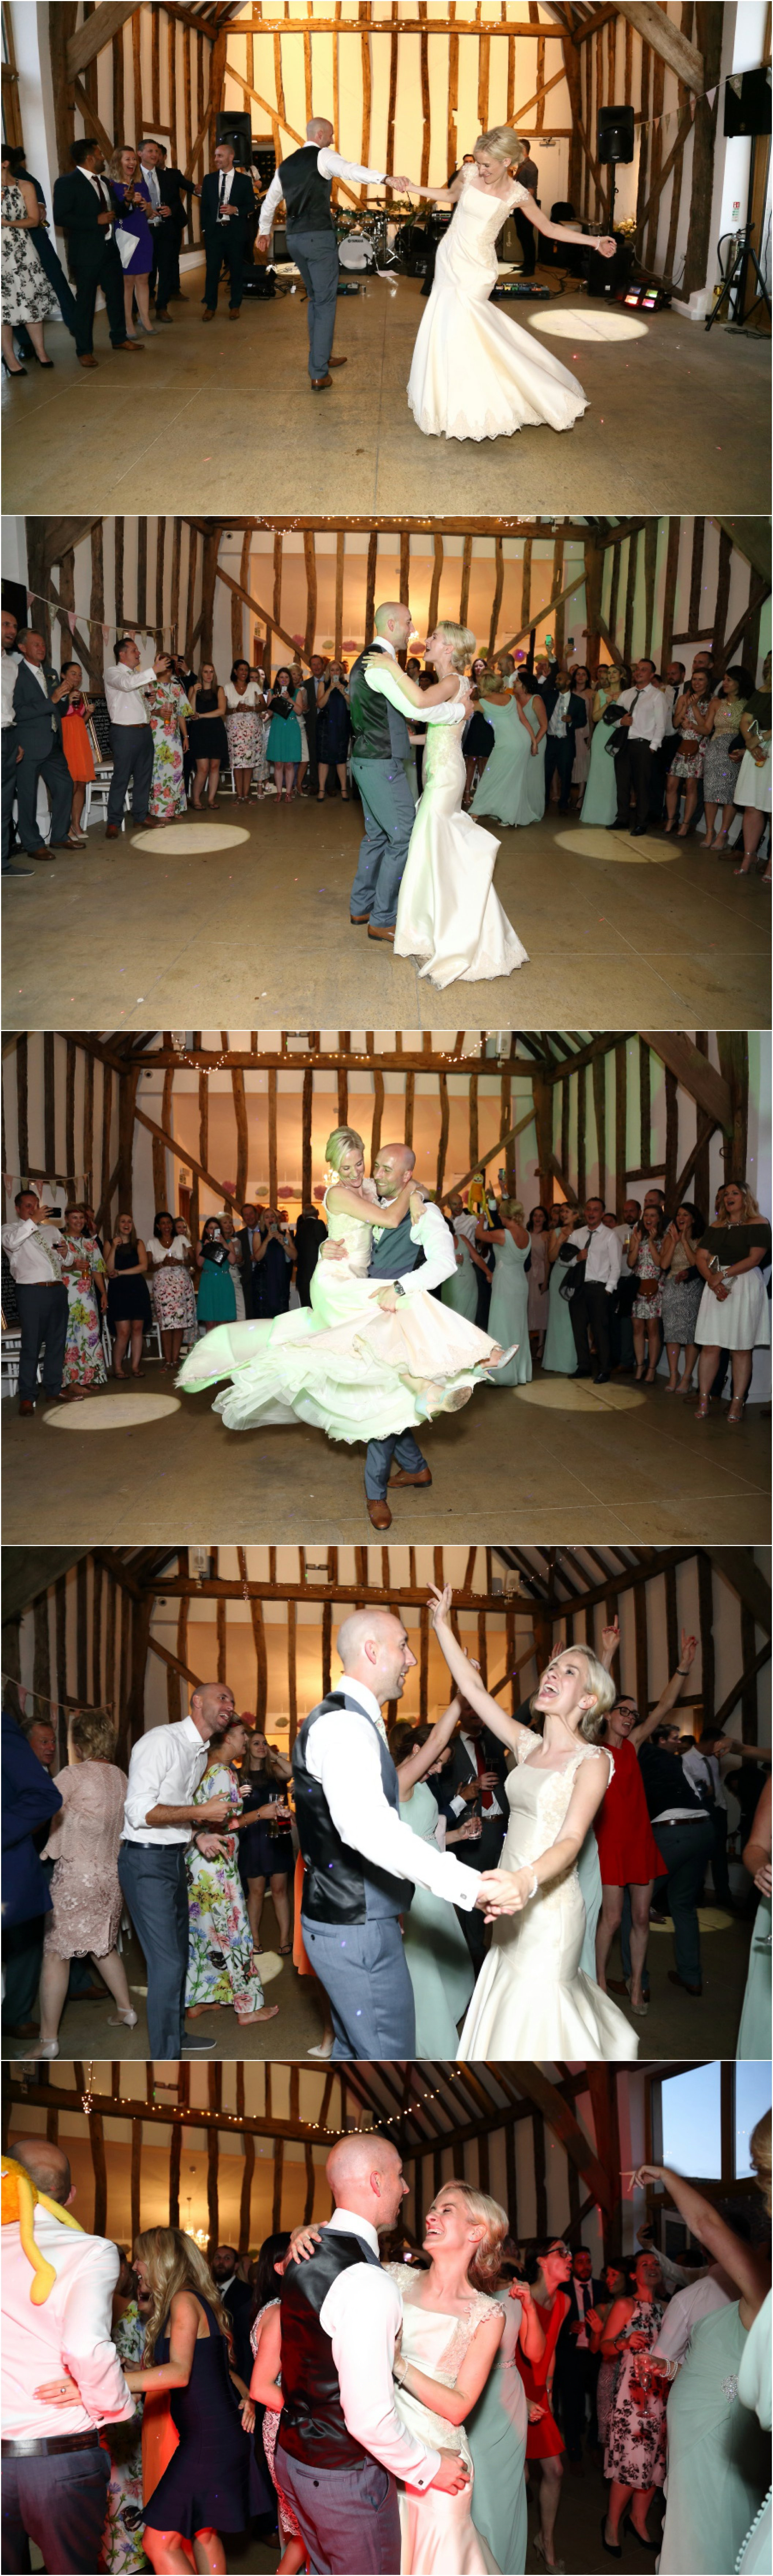 bride and groom dancing at white dove barns wedding suffolk